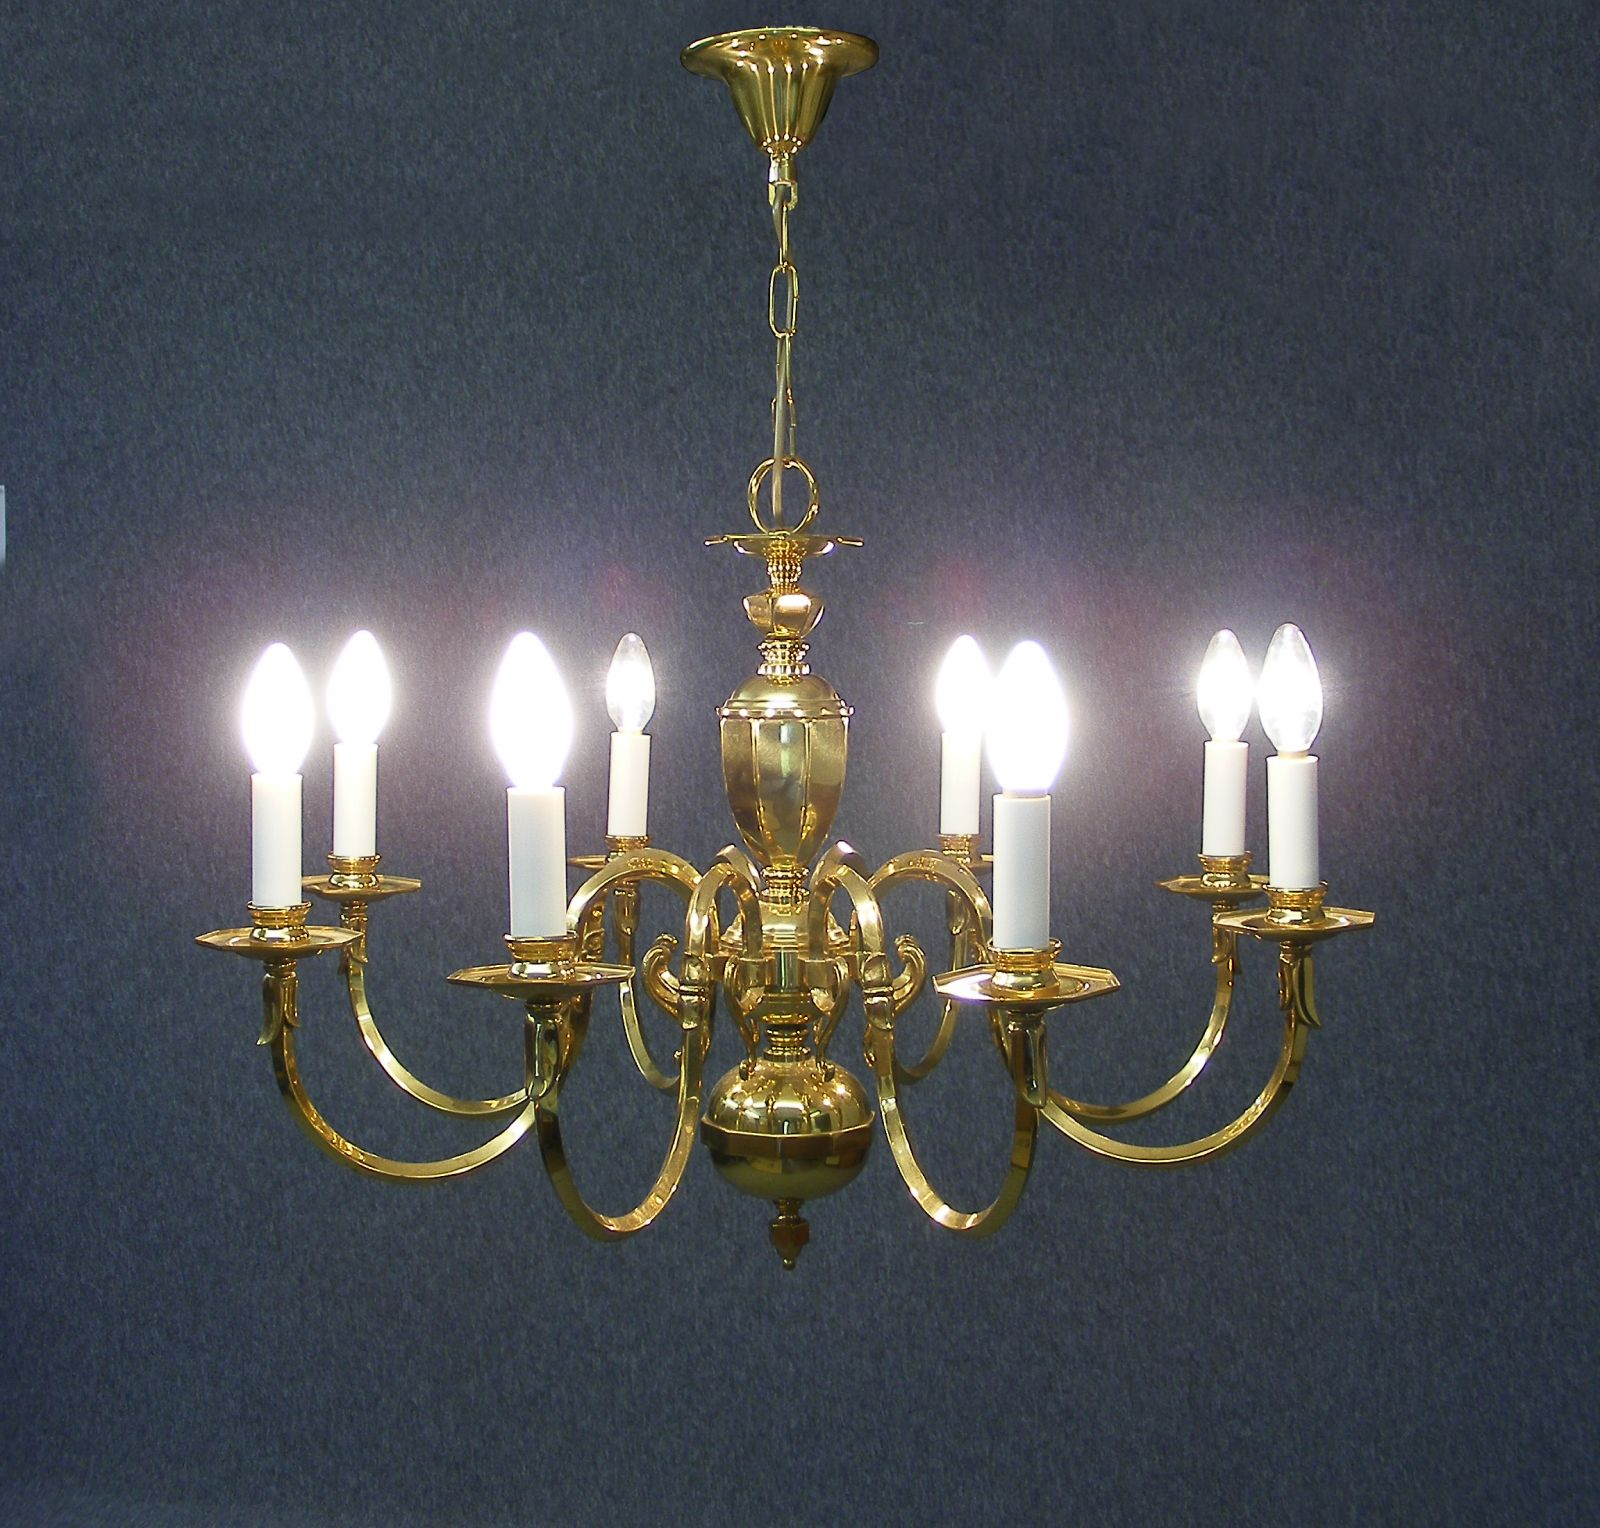 brass Georgian style 8 branch chandelier £175 ono available